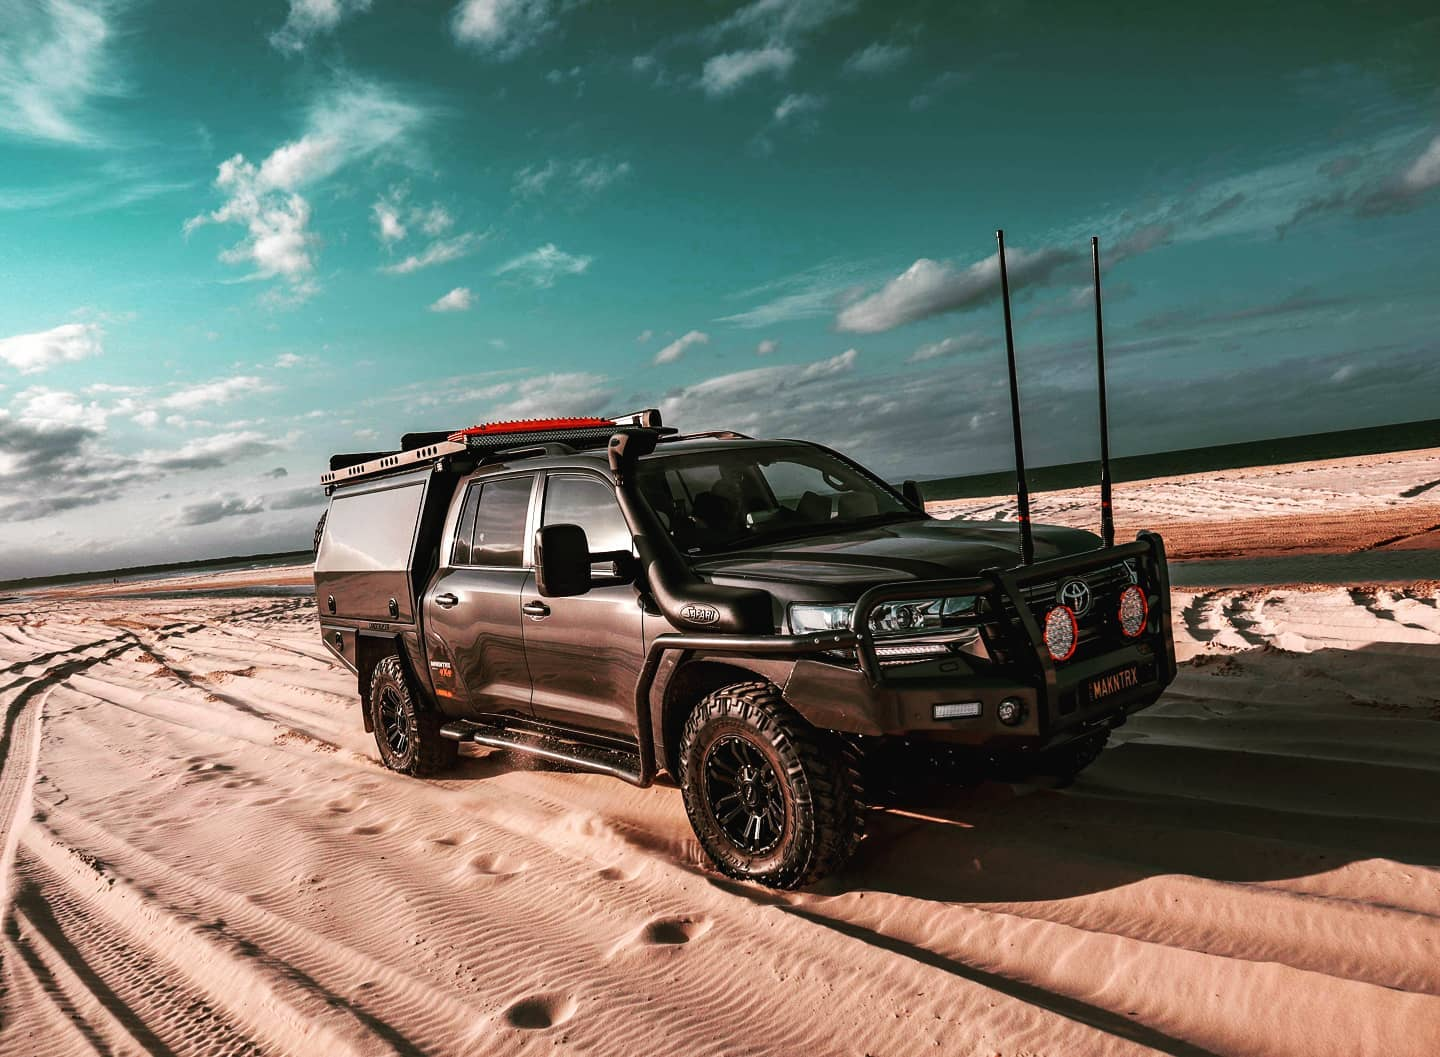 Happy Friday TEAM!! 🤘🤘🤘 Keen to get this big rig back on the sand, beach trips are definitely my favourite. 👌👌 Have a great weekend . . . . . . . . #rohvapour #roh #rohwheels #landcruiser200 #landcruiser200series #200series #200serieslandcruiser #4x4australia #4x4au #landcruiser #landcruiseraustralia #v8 #v8cruiser #v8diesel #4wdaction #4wd247rigs #4wd247